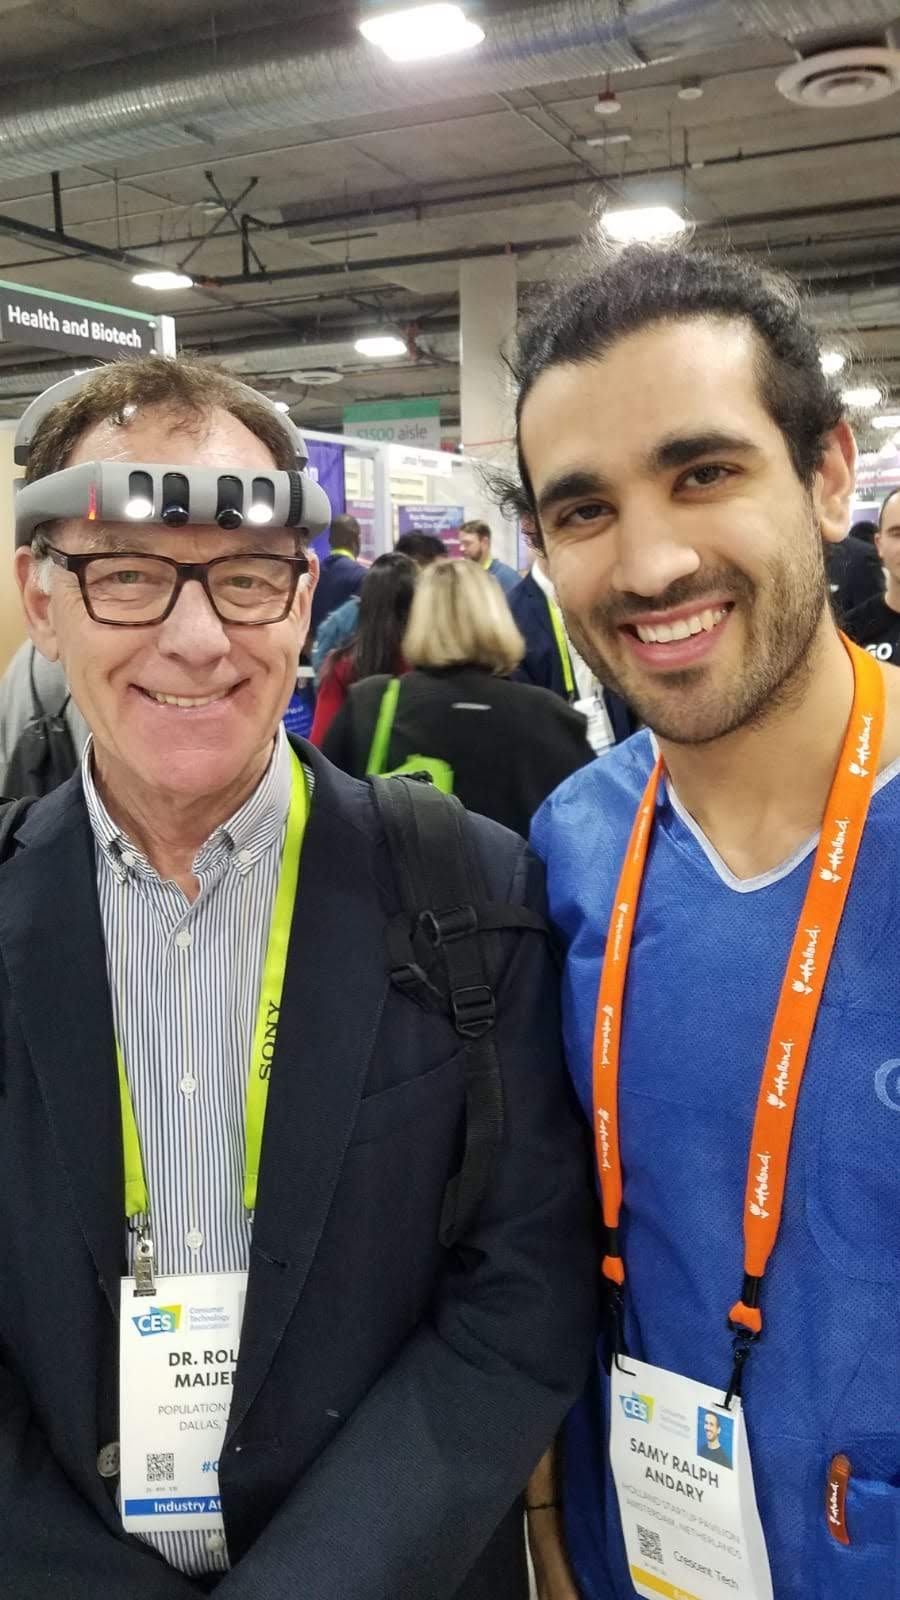 One of the many great Doctors we've met at CES2019